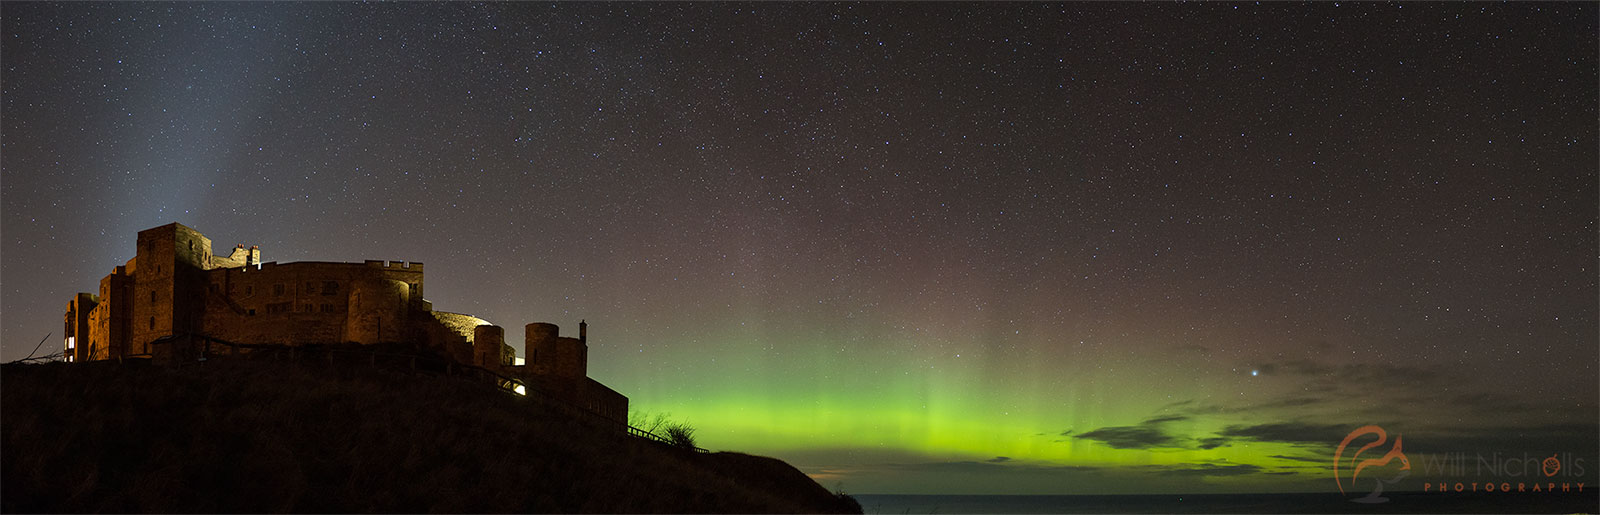 The Northern Lights at Bamburgh Castle, Northumberland.